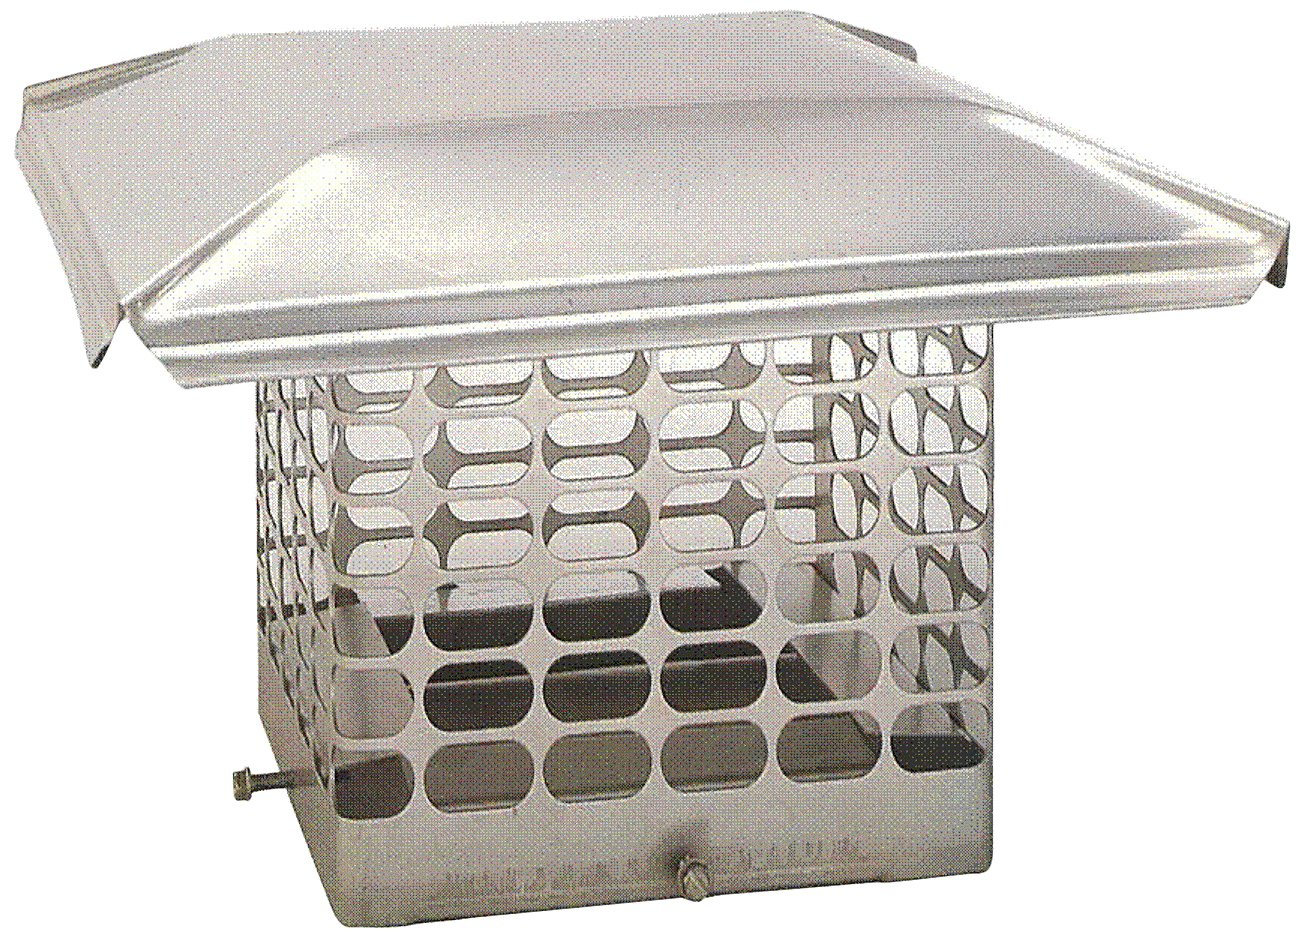 The Forever Cap CCSS817 8 x 17-Inch Stainless Steel Single Flue Chimney Cap by The Forever Cap